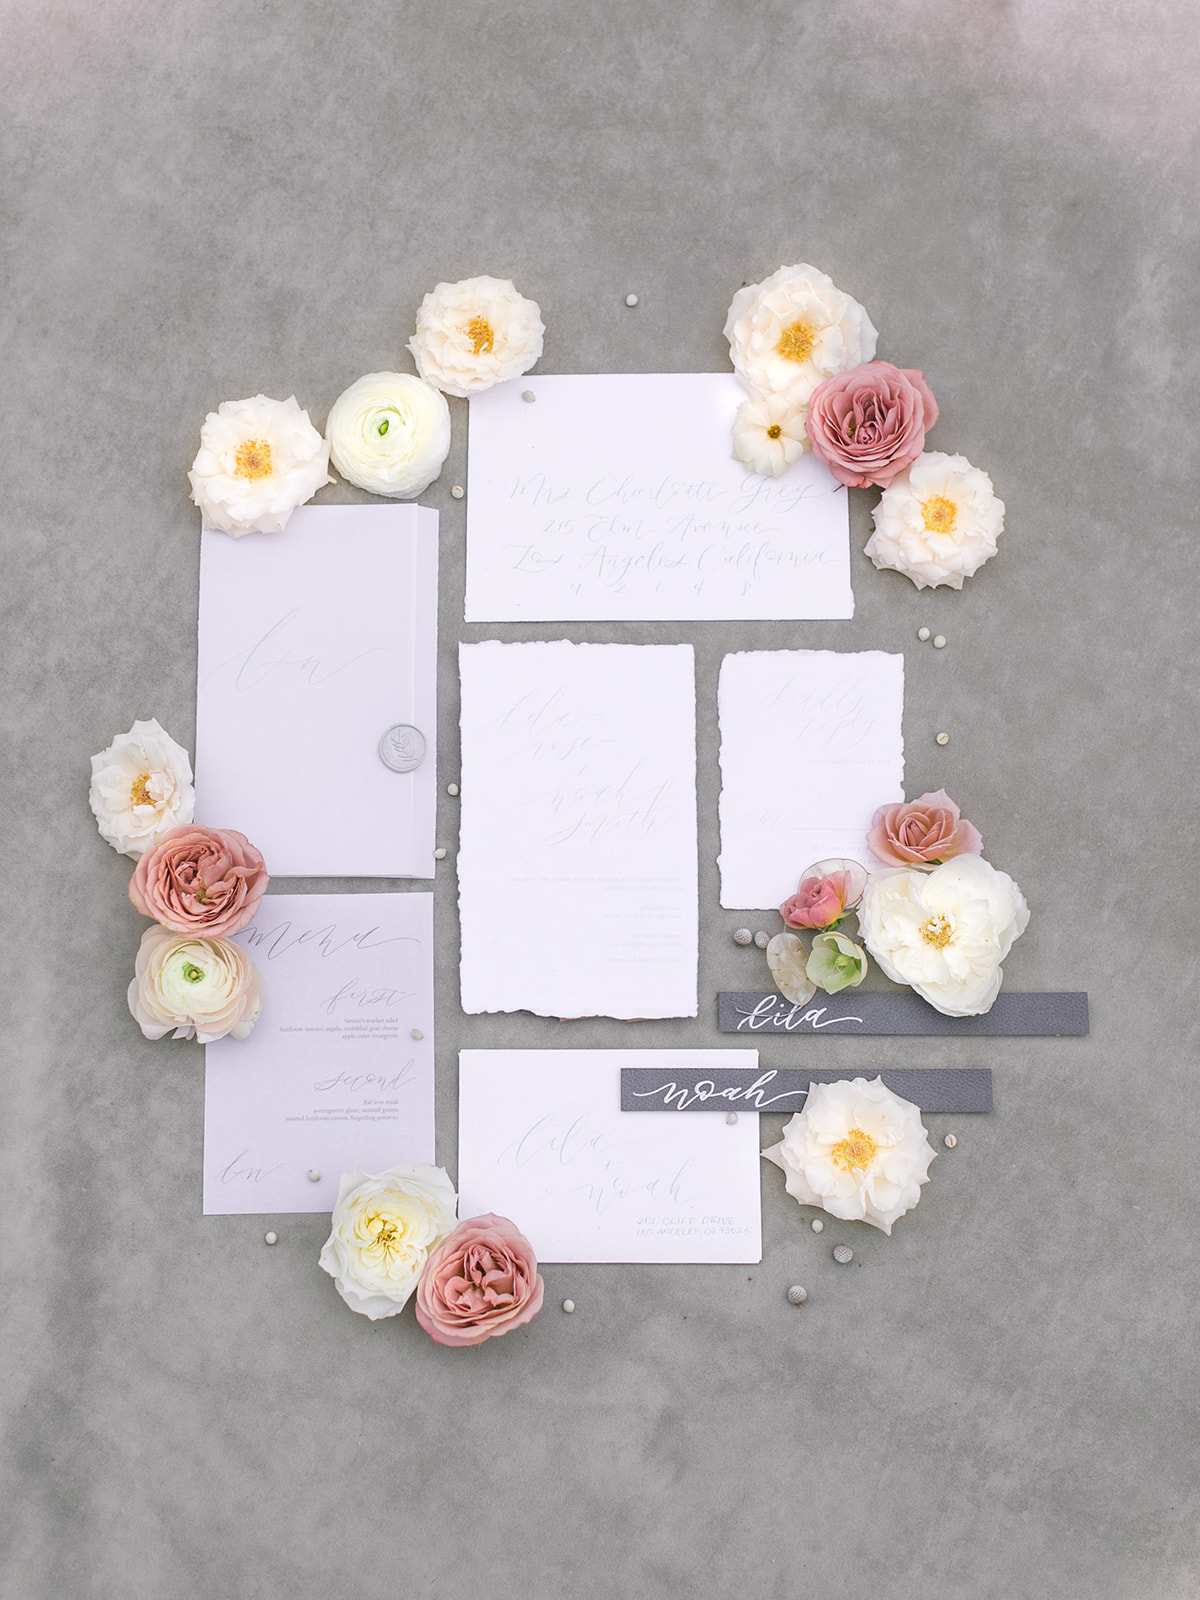 Romantic wedding invitation suite.jpg